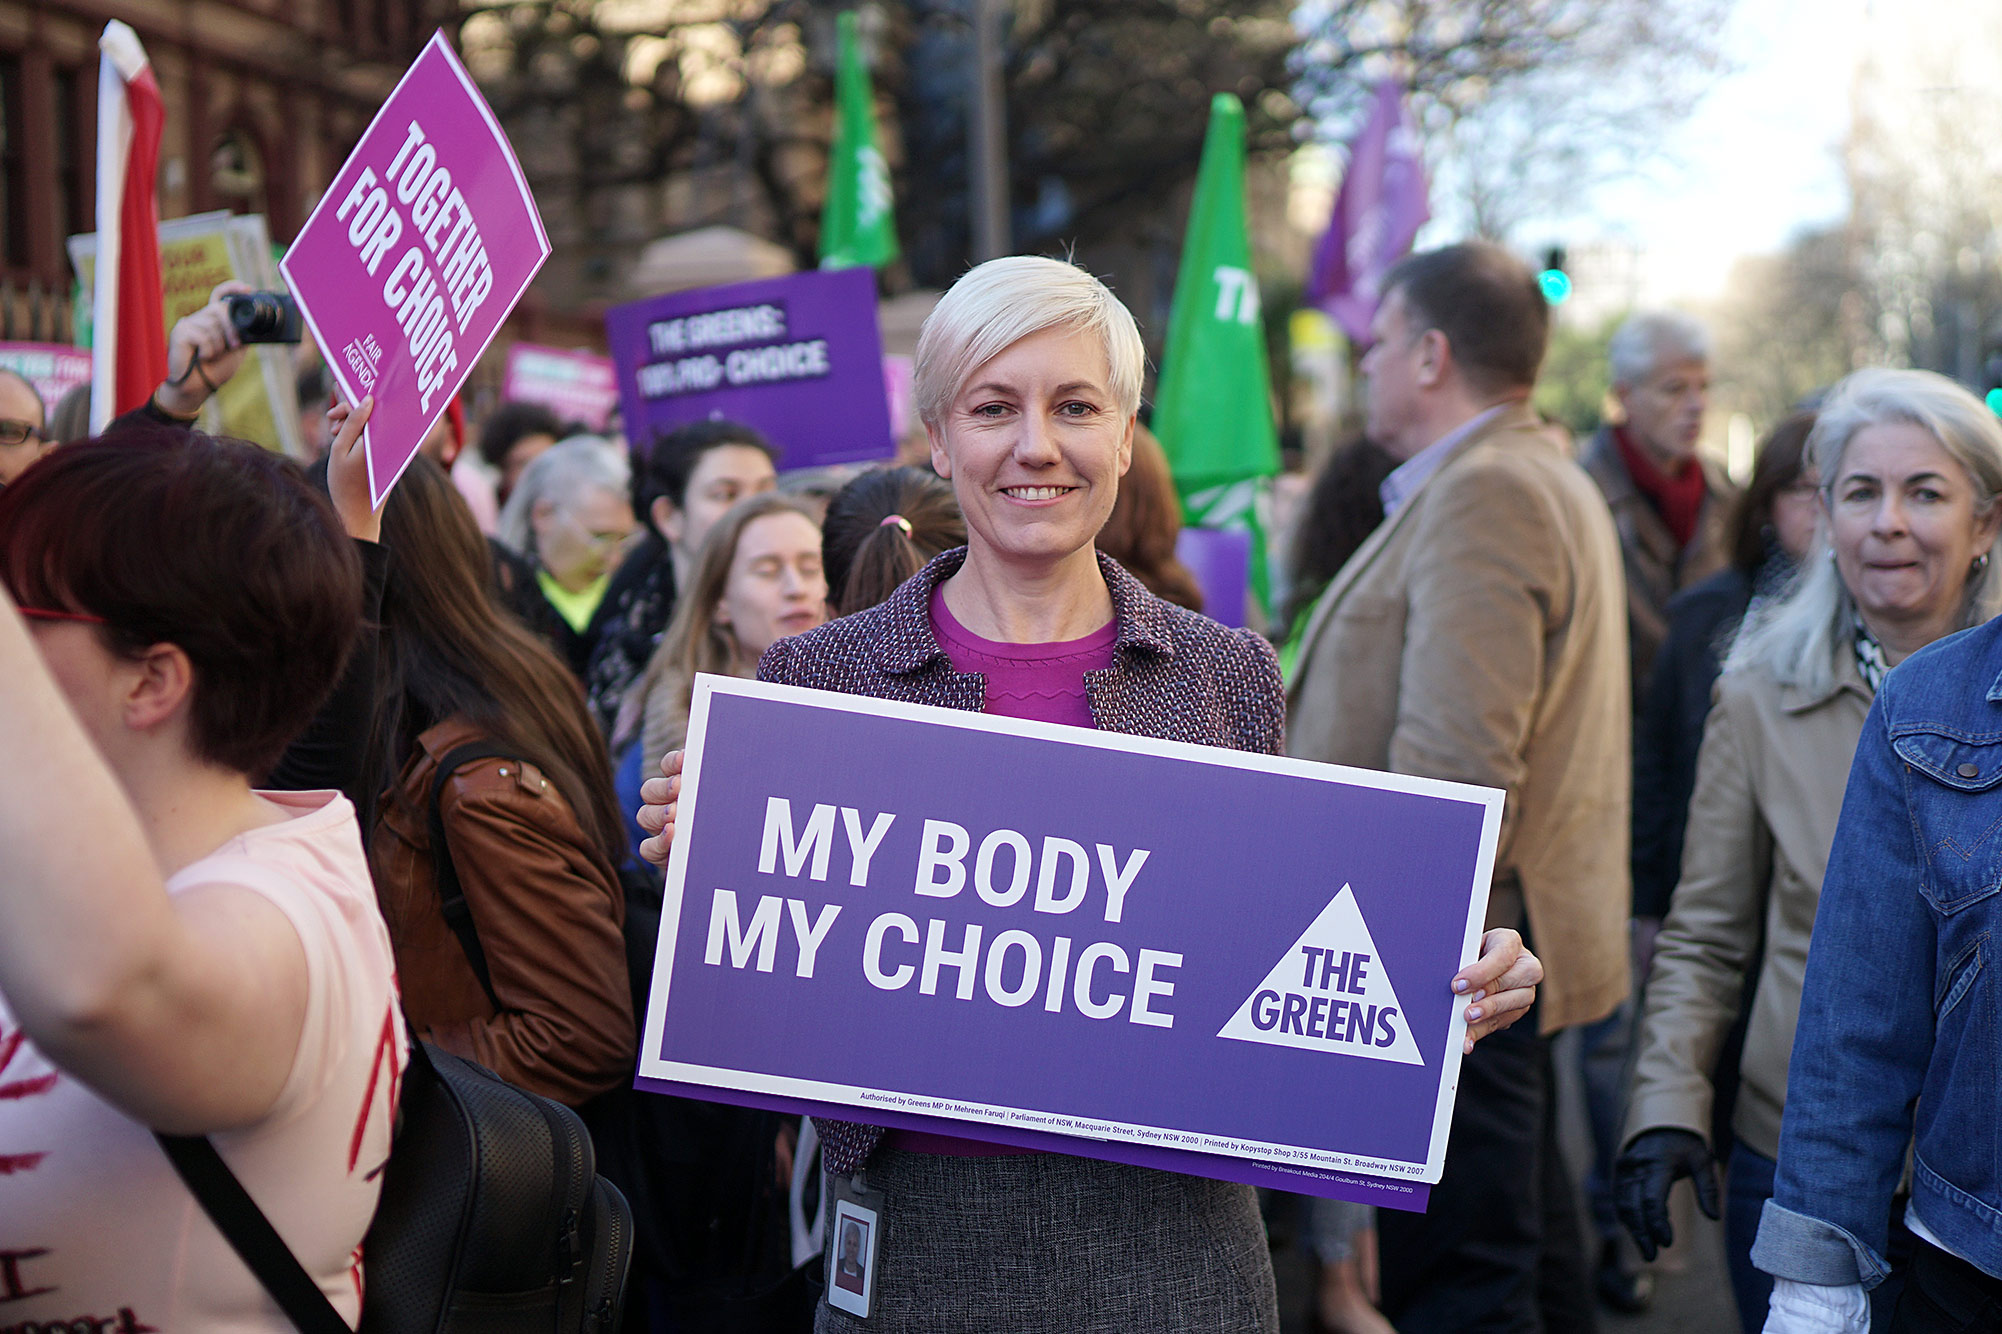 Cate campaigning for a woman's right to choose.